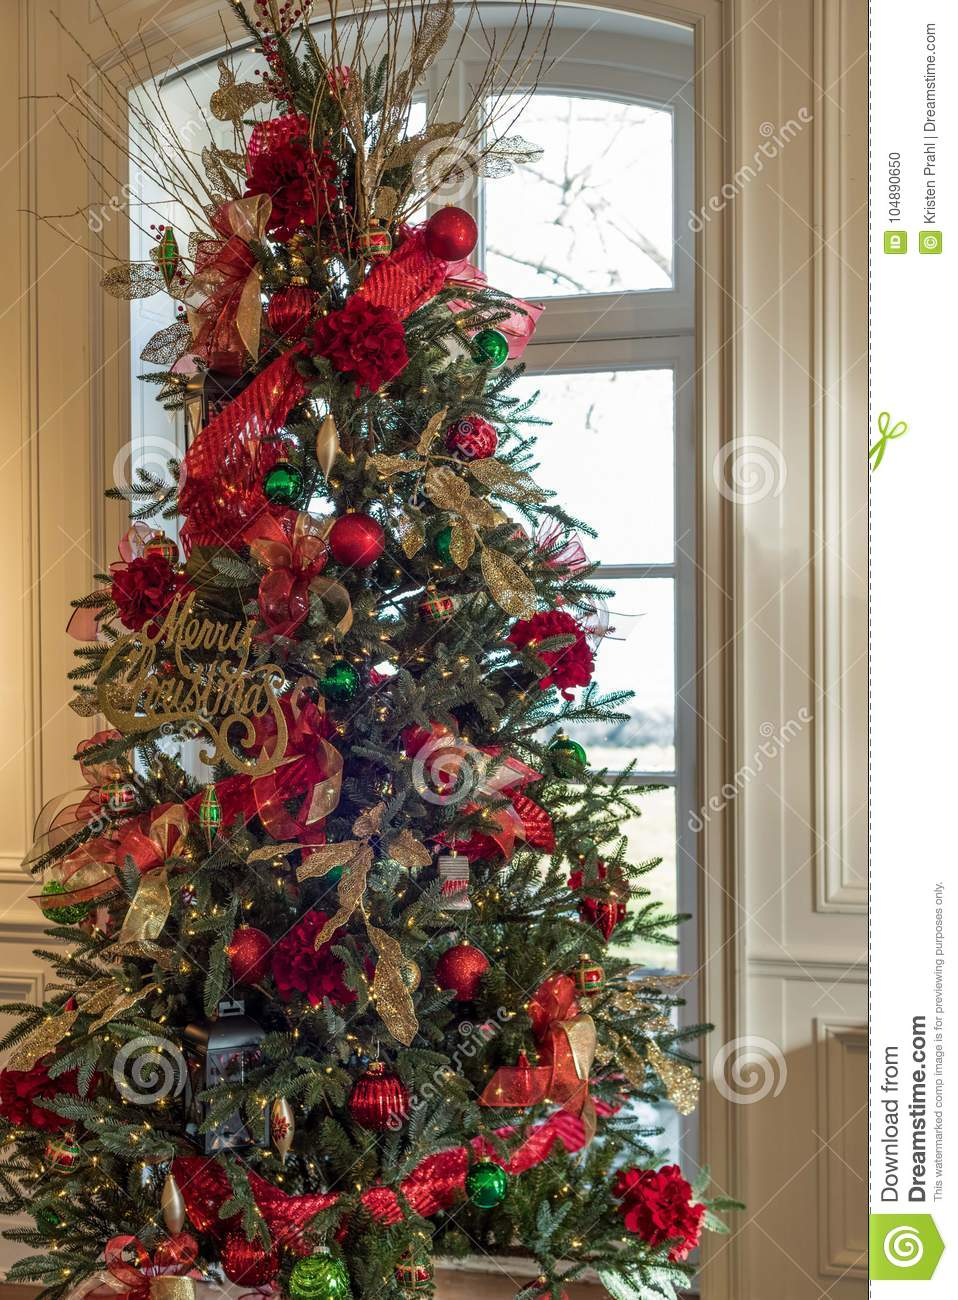 Christmas Tree Decorations Red And Gold.Christmas Tree Decorated In Red And Gold Ornaments Stock